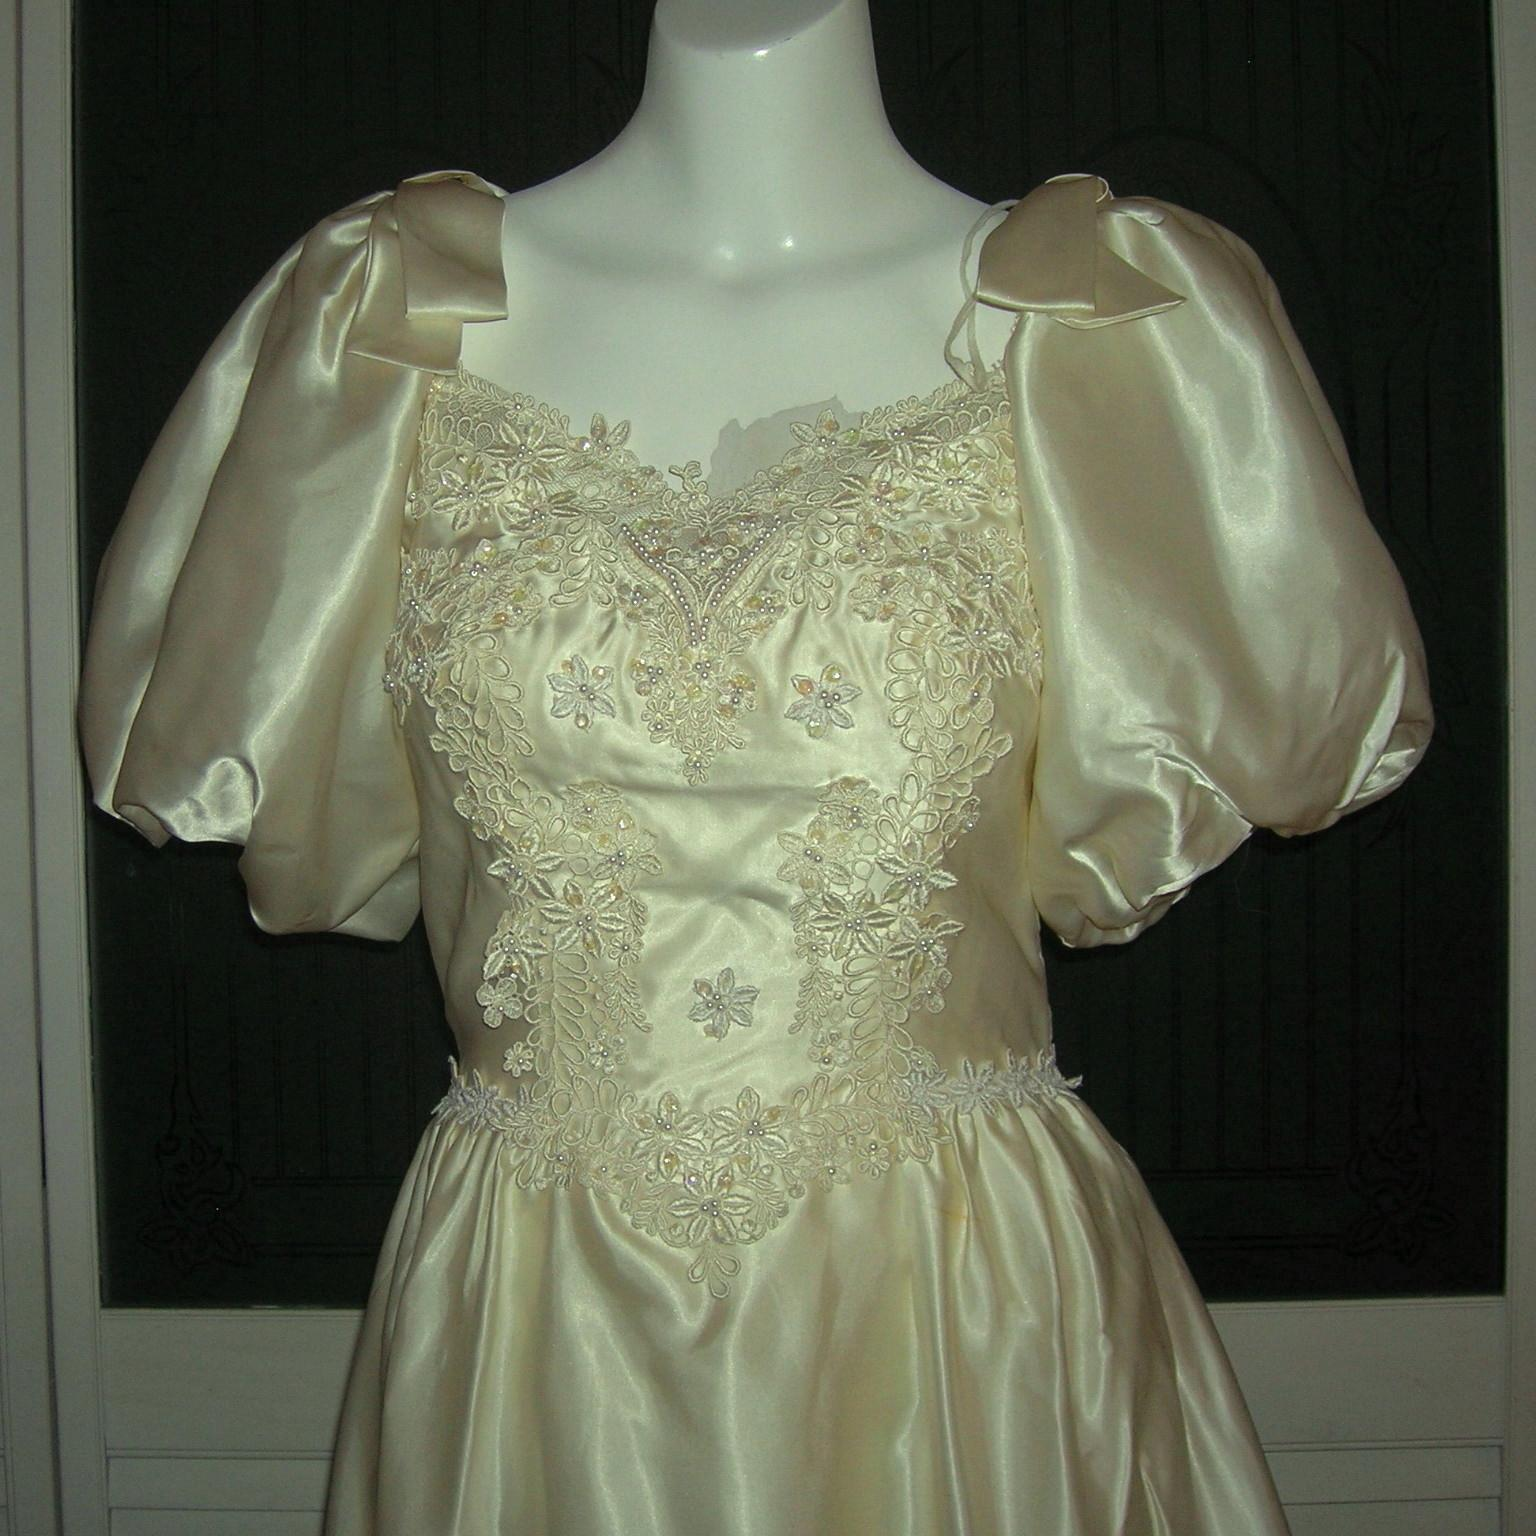 Vintage Liquid Satin Cinderella Bridal Gown Wedding Dress. Inexpensive Vintage Lace Wedding Dresses. Black Halter Wedding Dresses. Indian Wedding Dresses Buy Online. Hippie Summer Wedding Dresses. Vera Wang Jessica Wedding Dress. Wedding Guest Dresses Over 40. Color Accented Wedding Dress Designers. Wedding Dress In Plus Size On Sale